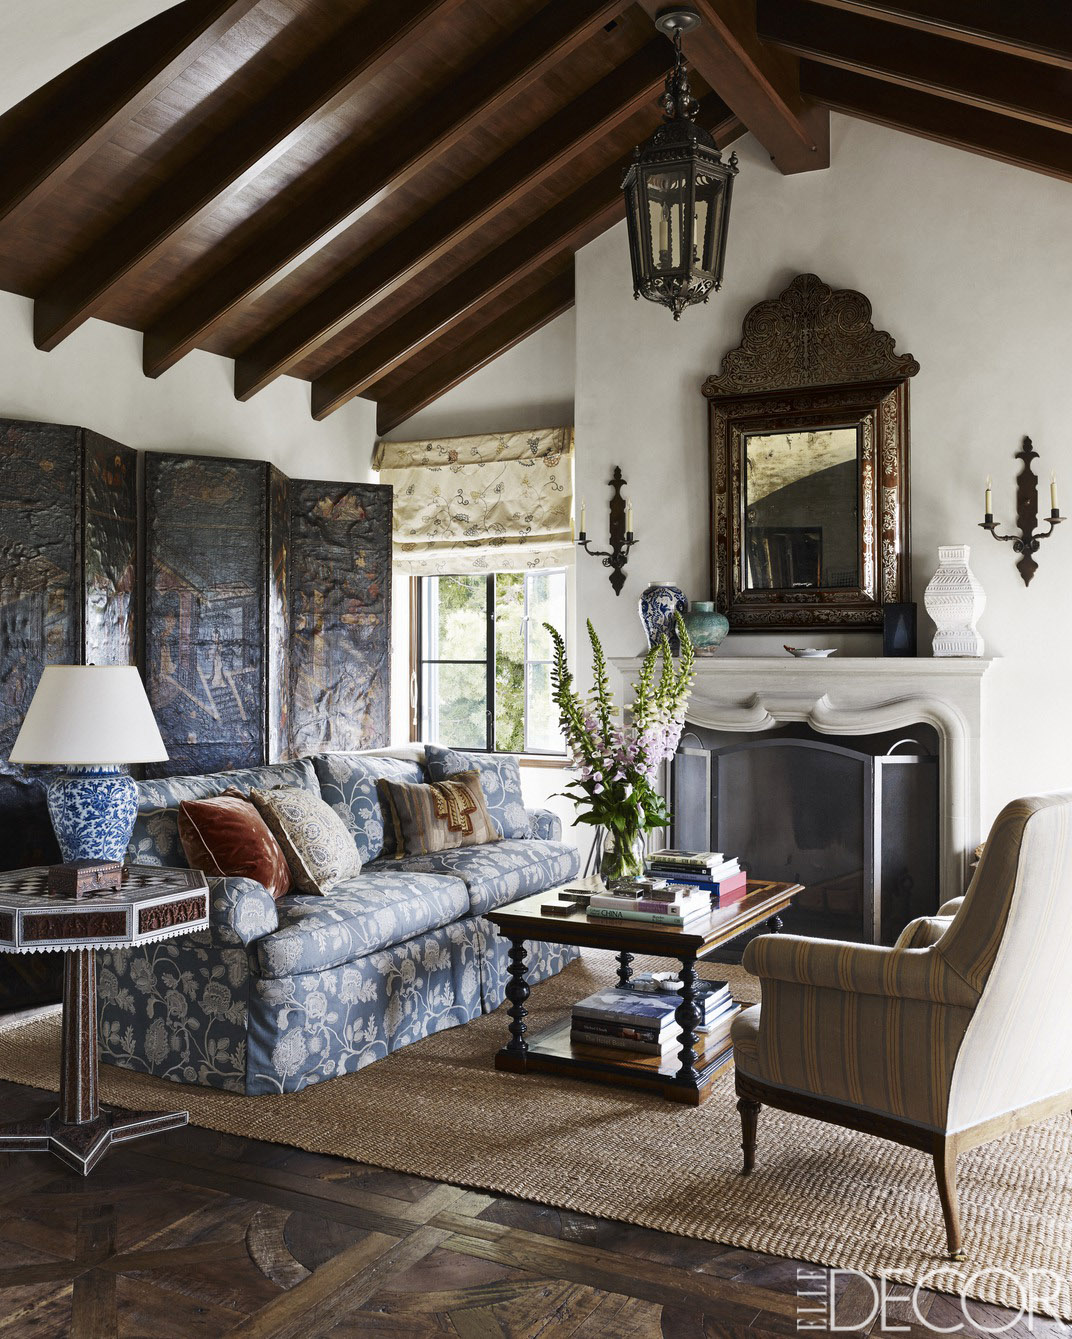 HOUSE TOUR: A Stunning California Home Inspired By The